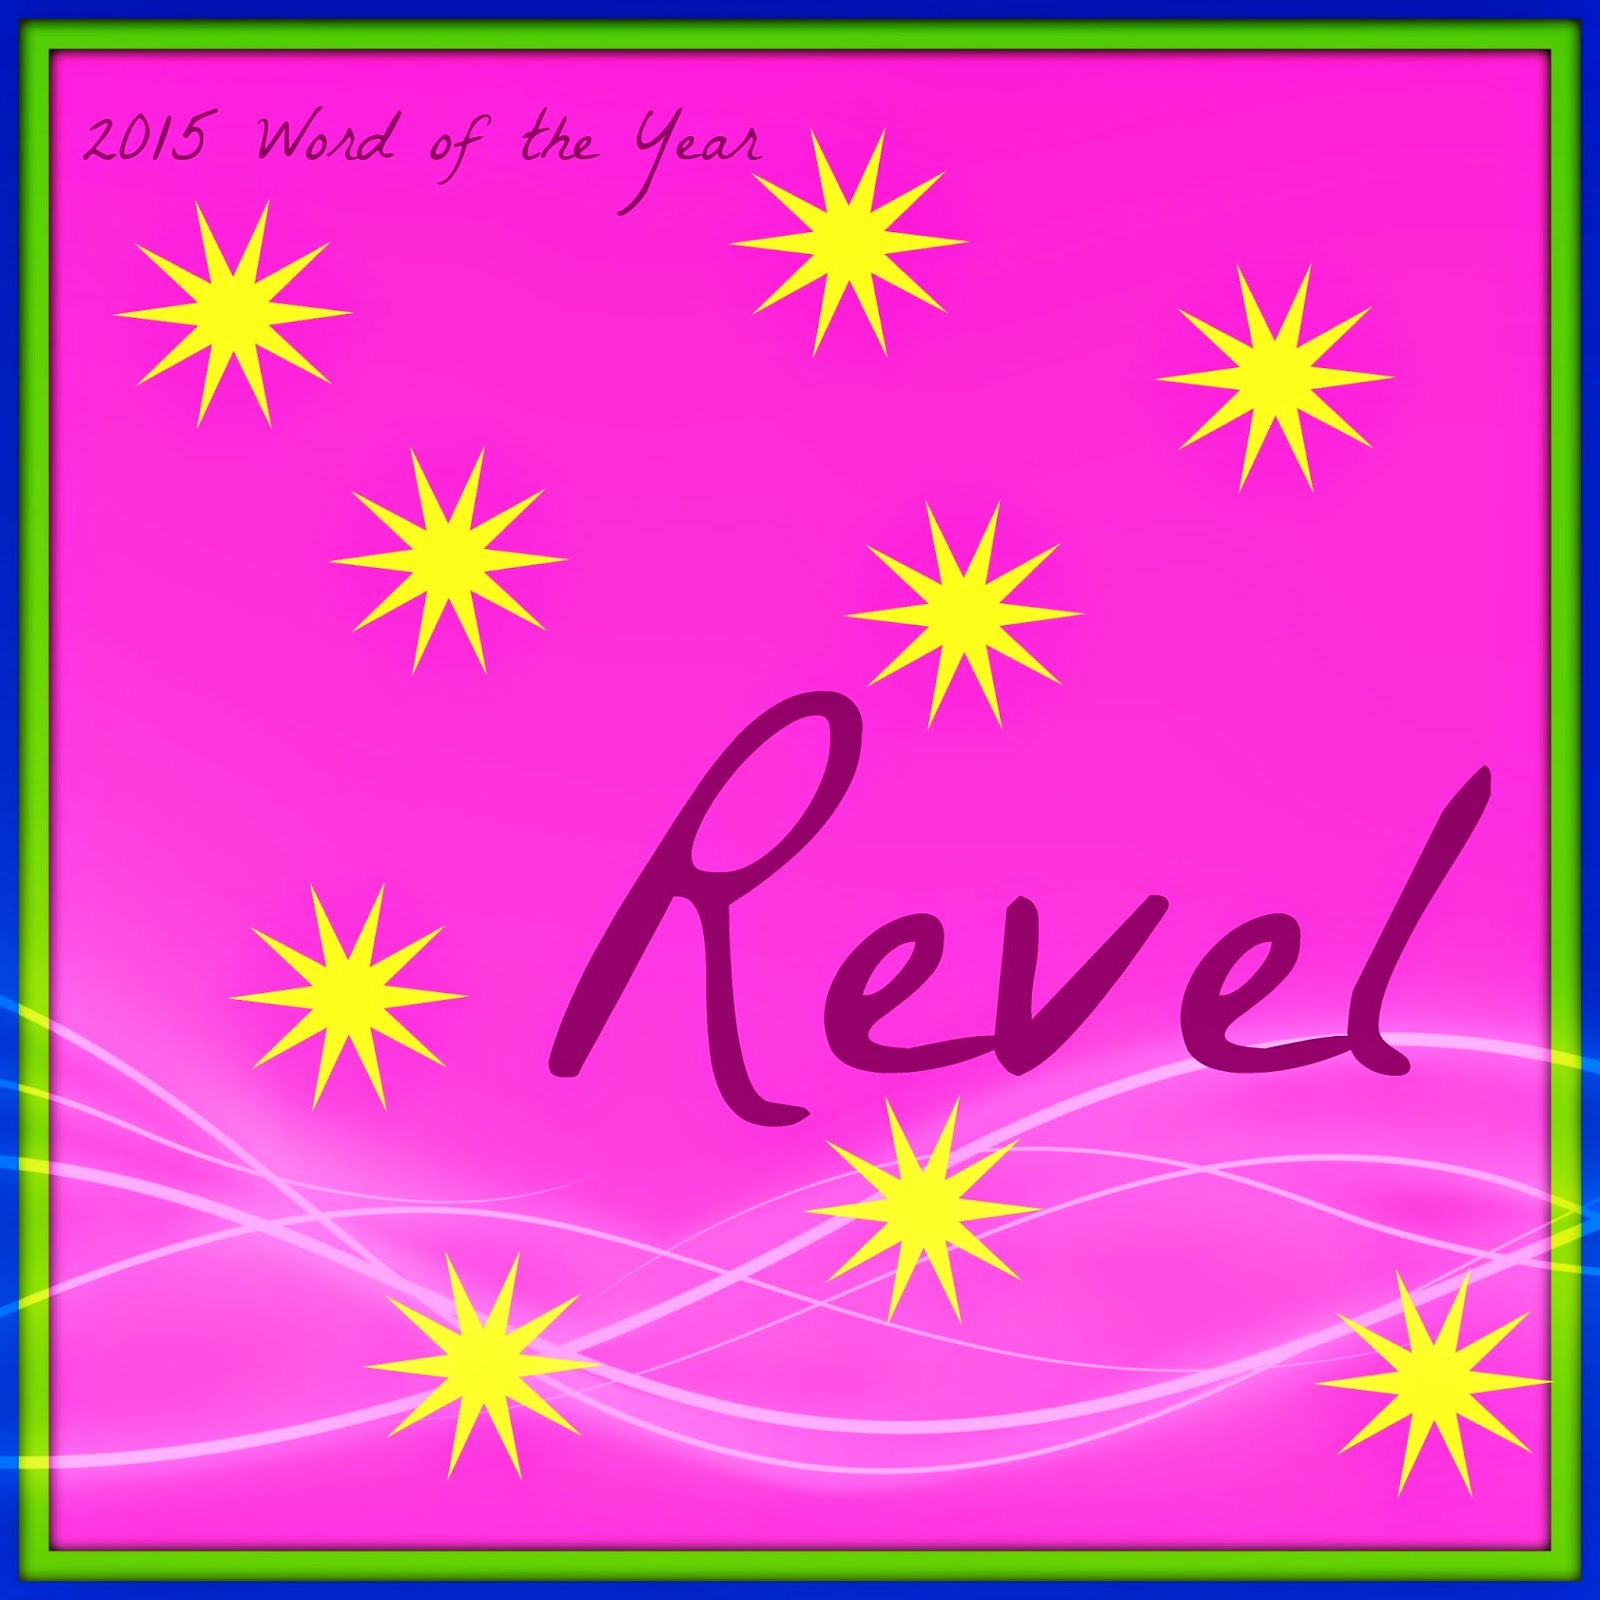 http://ladydusk.blogspot.com/search/label/Revel